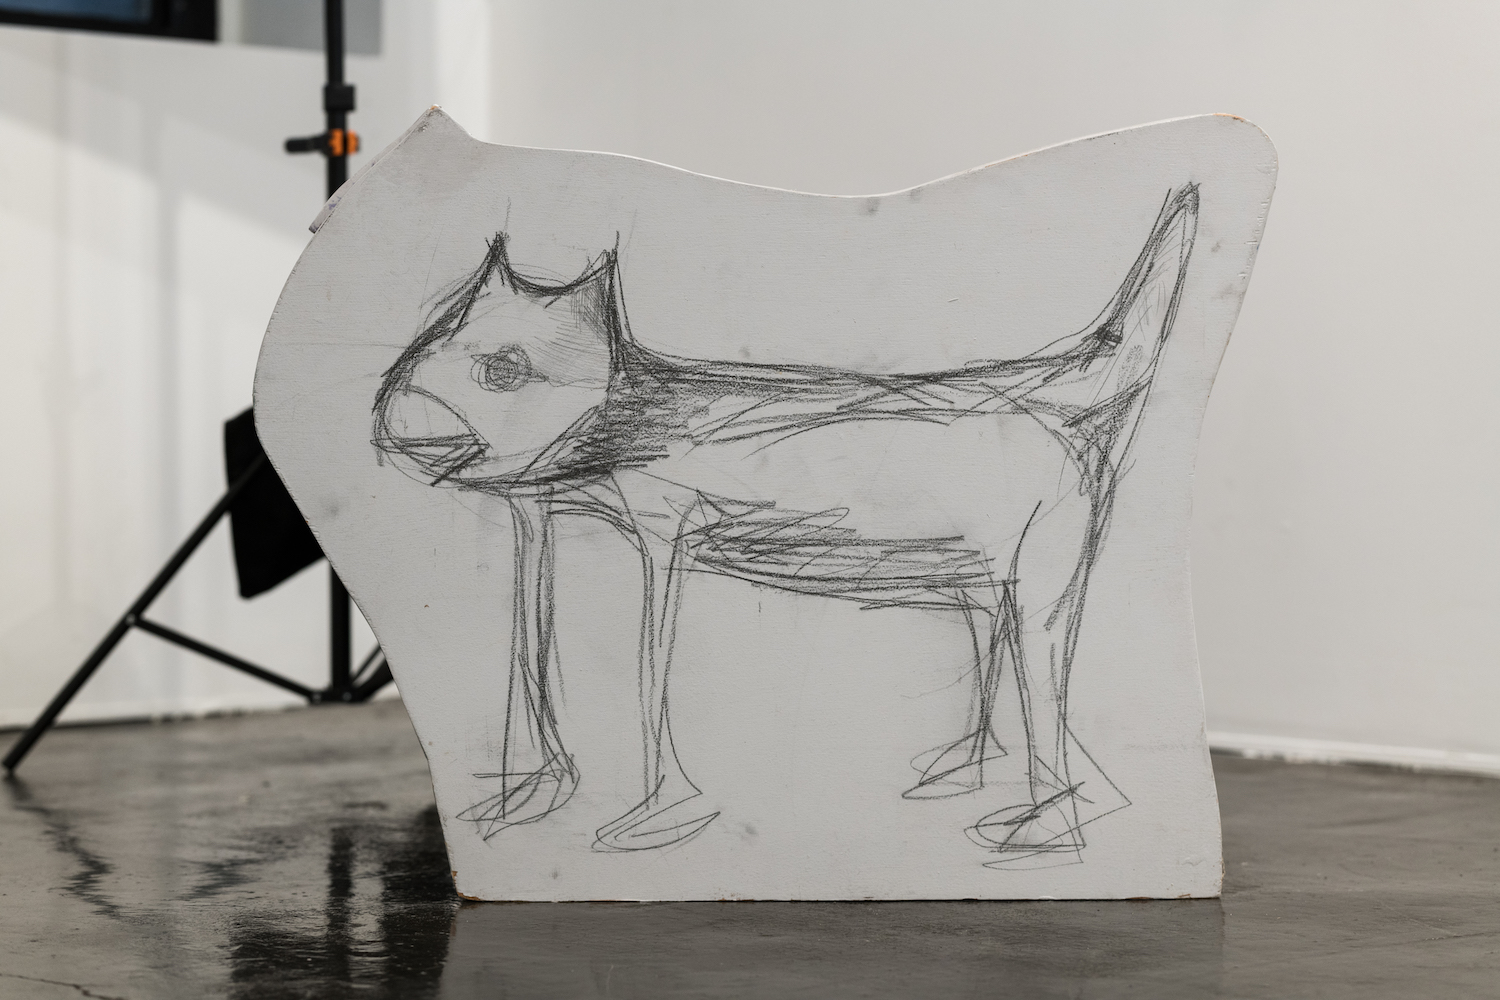 Charcoal drawing of an angry dog, applied on a wooden sculpture of a cartoon dog shape.